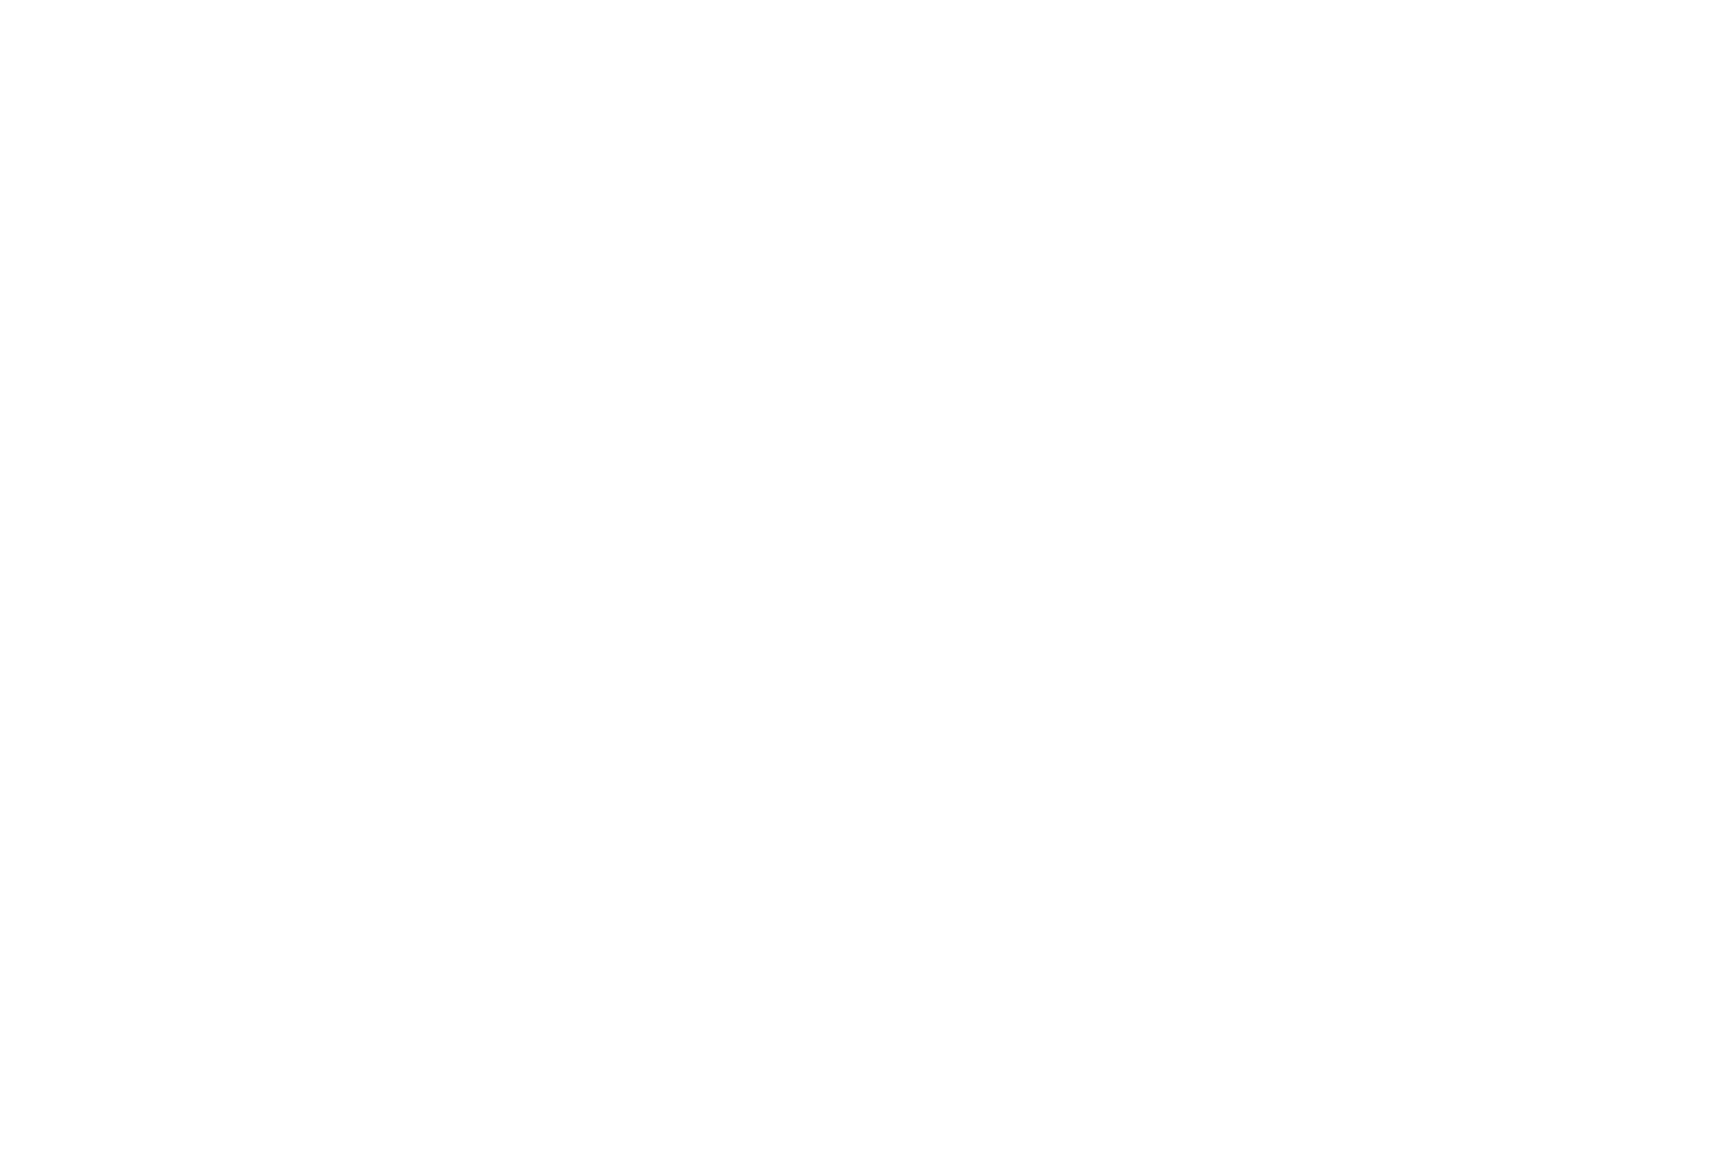 OFFICIAL SELECTION - Bloodstained Indie Film Festival - 2018.png